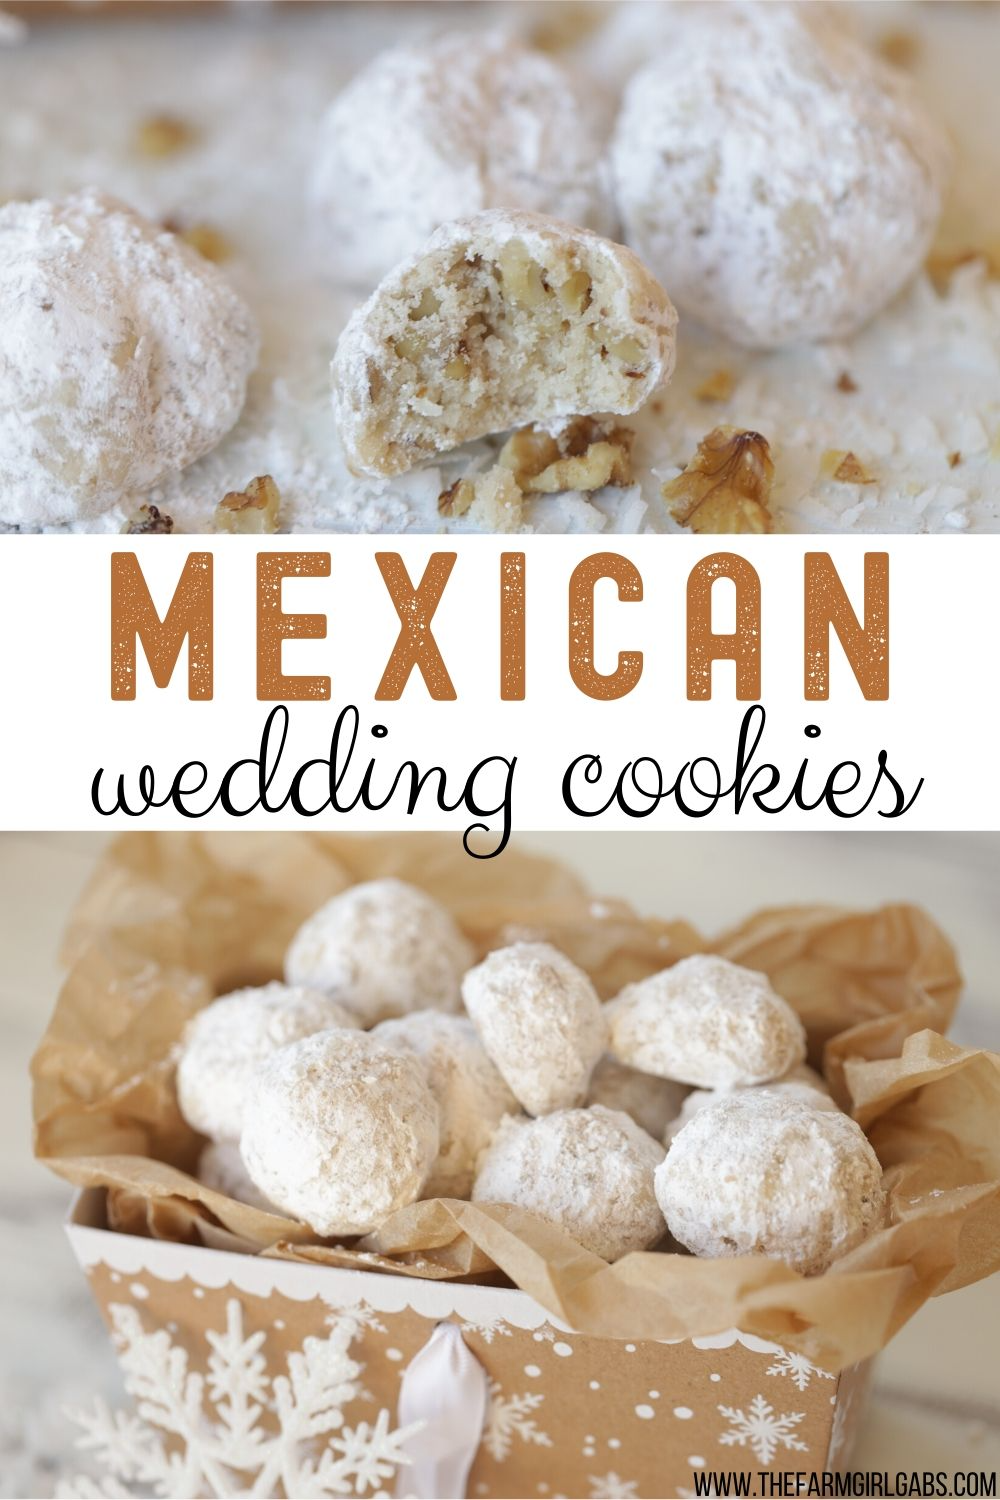 Mexican Wedding Cookies Snowball Cookies Recipe In 2020 Mexican Wedding Cookies Mexican Wedding Cookies Recipes Mexican Sugar Cookies Recipe